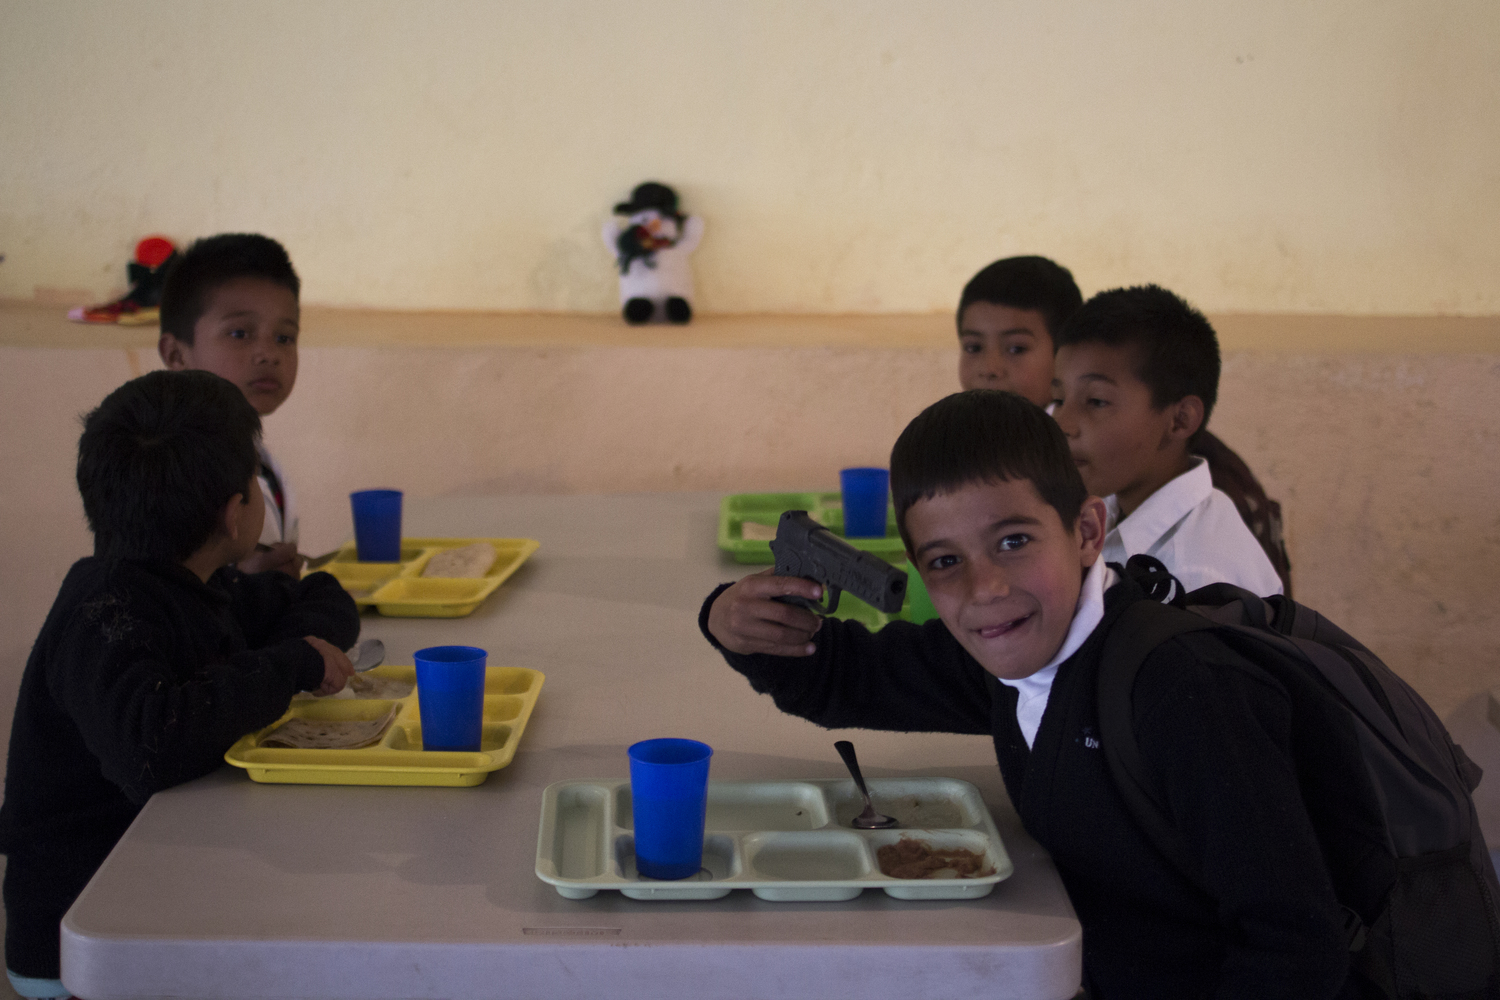 Children at HEPAC in Nogales, Sonora, Mexico. 2014.